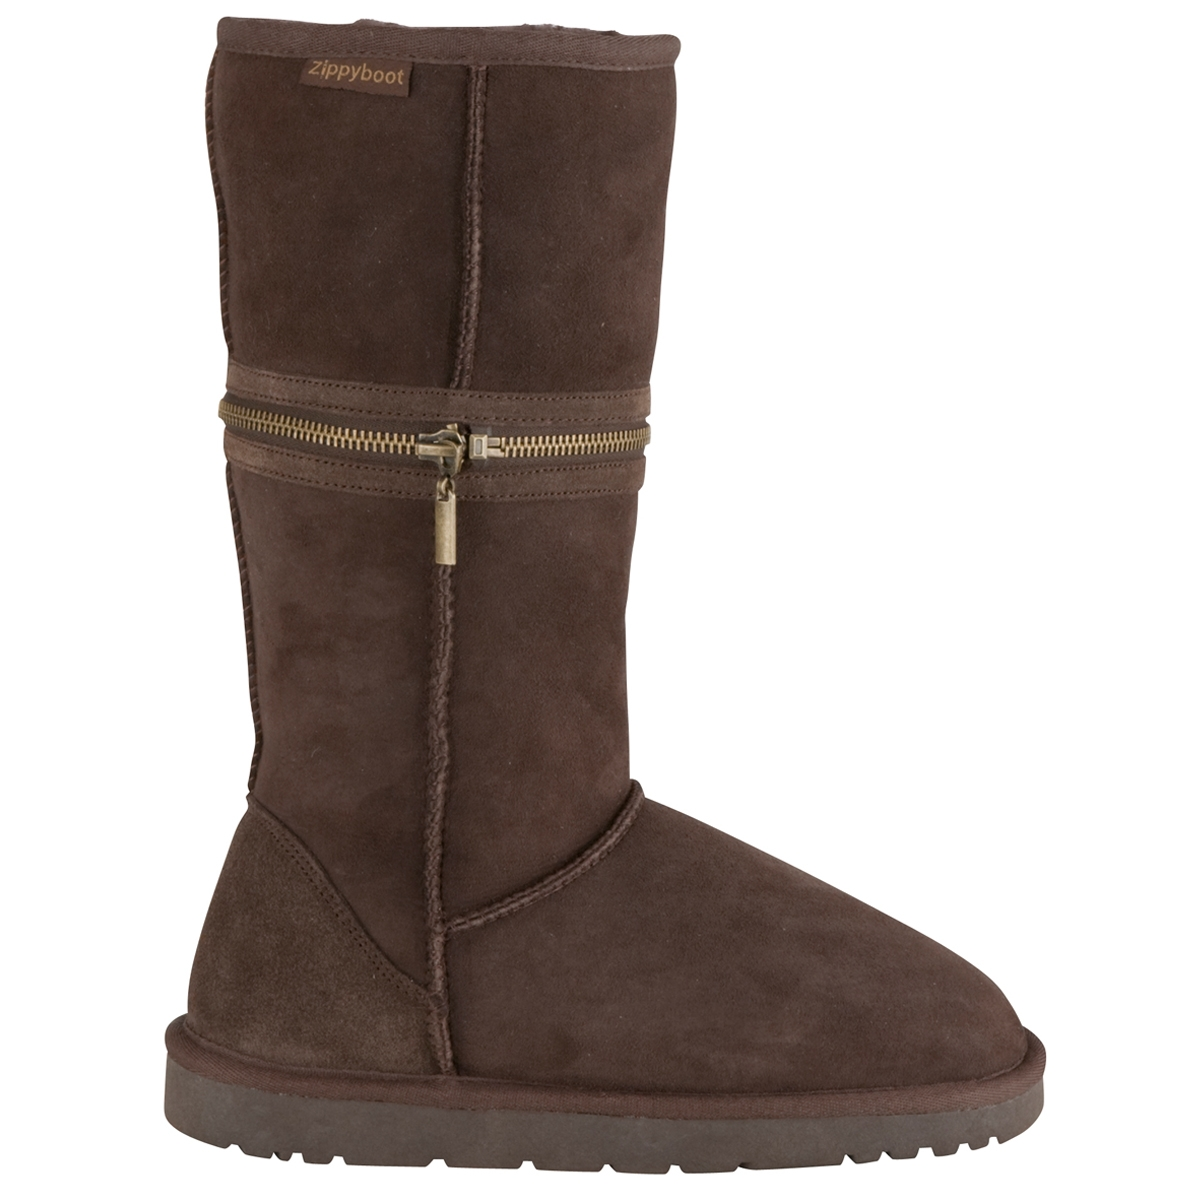 bottes - rougefoot Zippydémarrage (Tan or Chocolate)